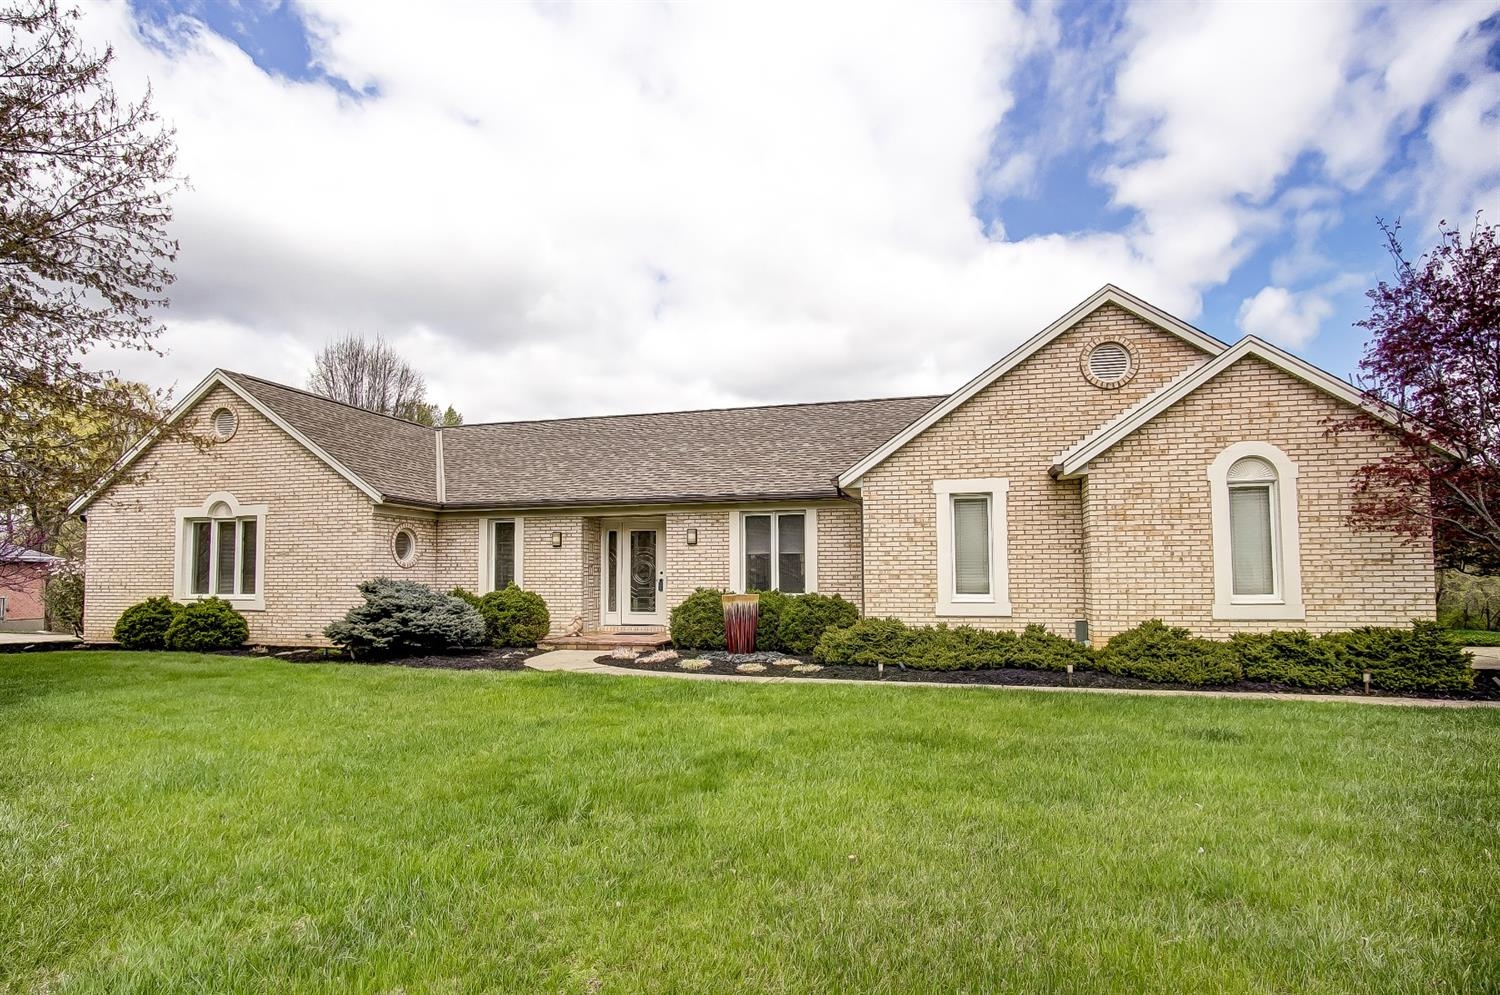 Photo 2 for 11872 Miamitrail Ct Colerain Twp.West, OH 45252